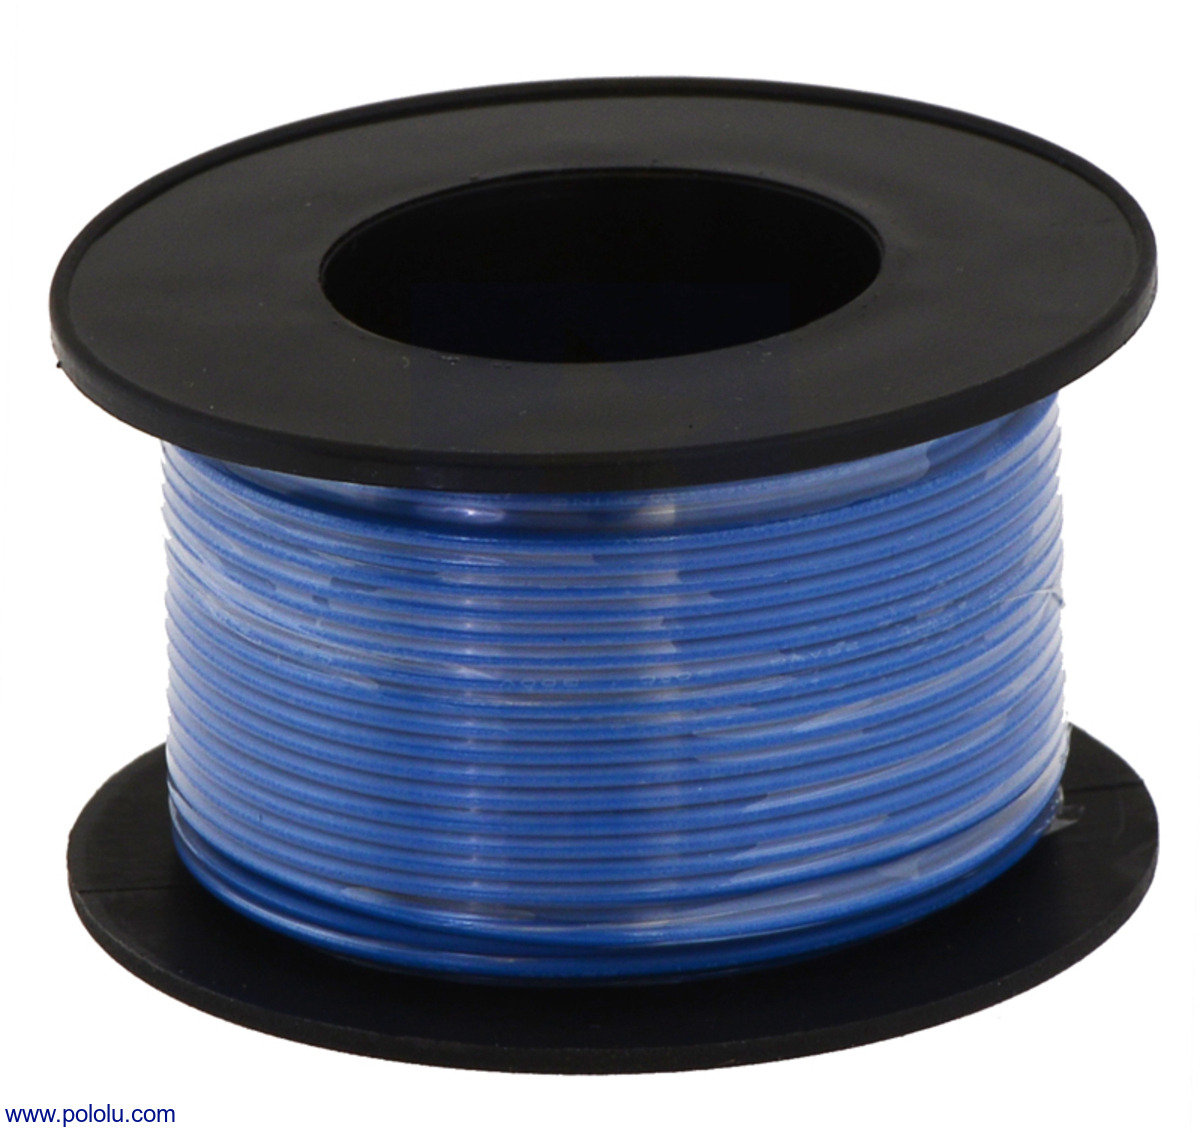 Pololu stranded wire blue 22 awg 50 feet stranded wire blue 22 awg 50 feet greentooth Choice Image